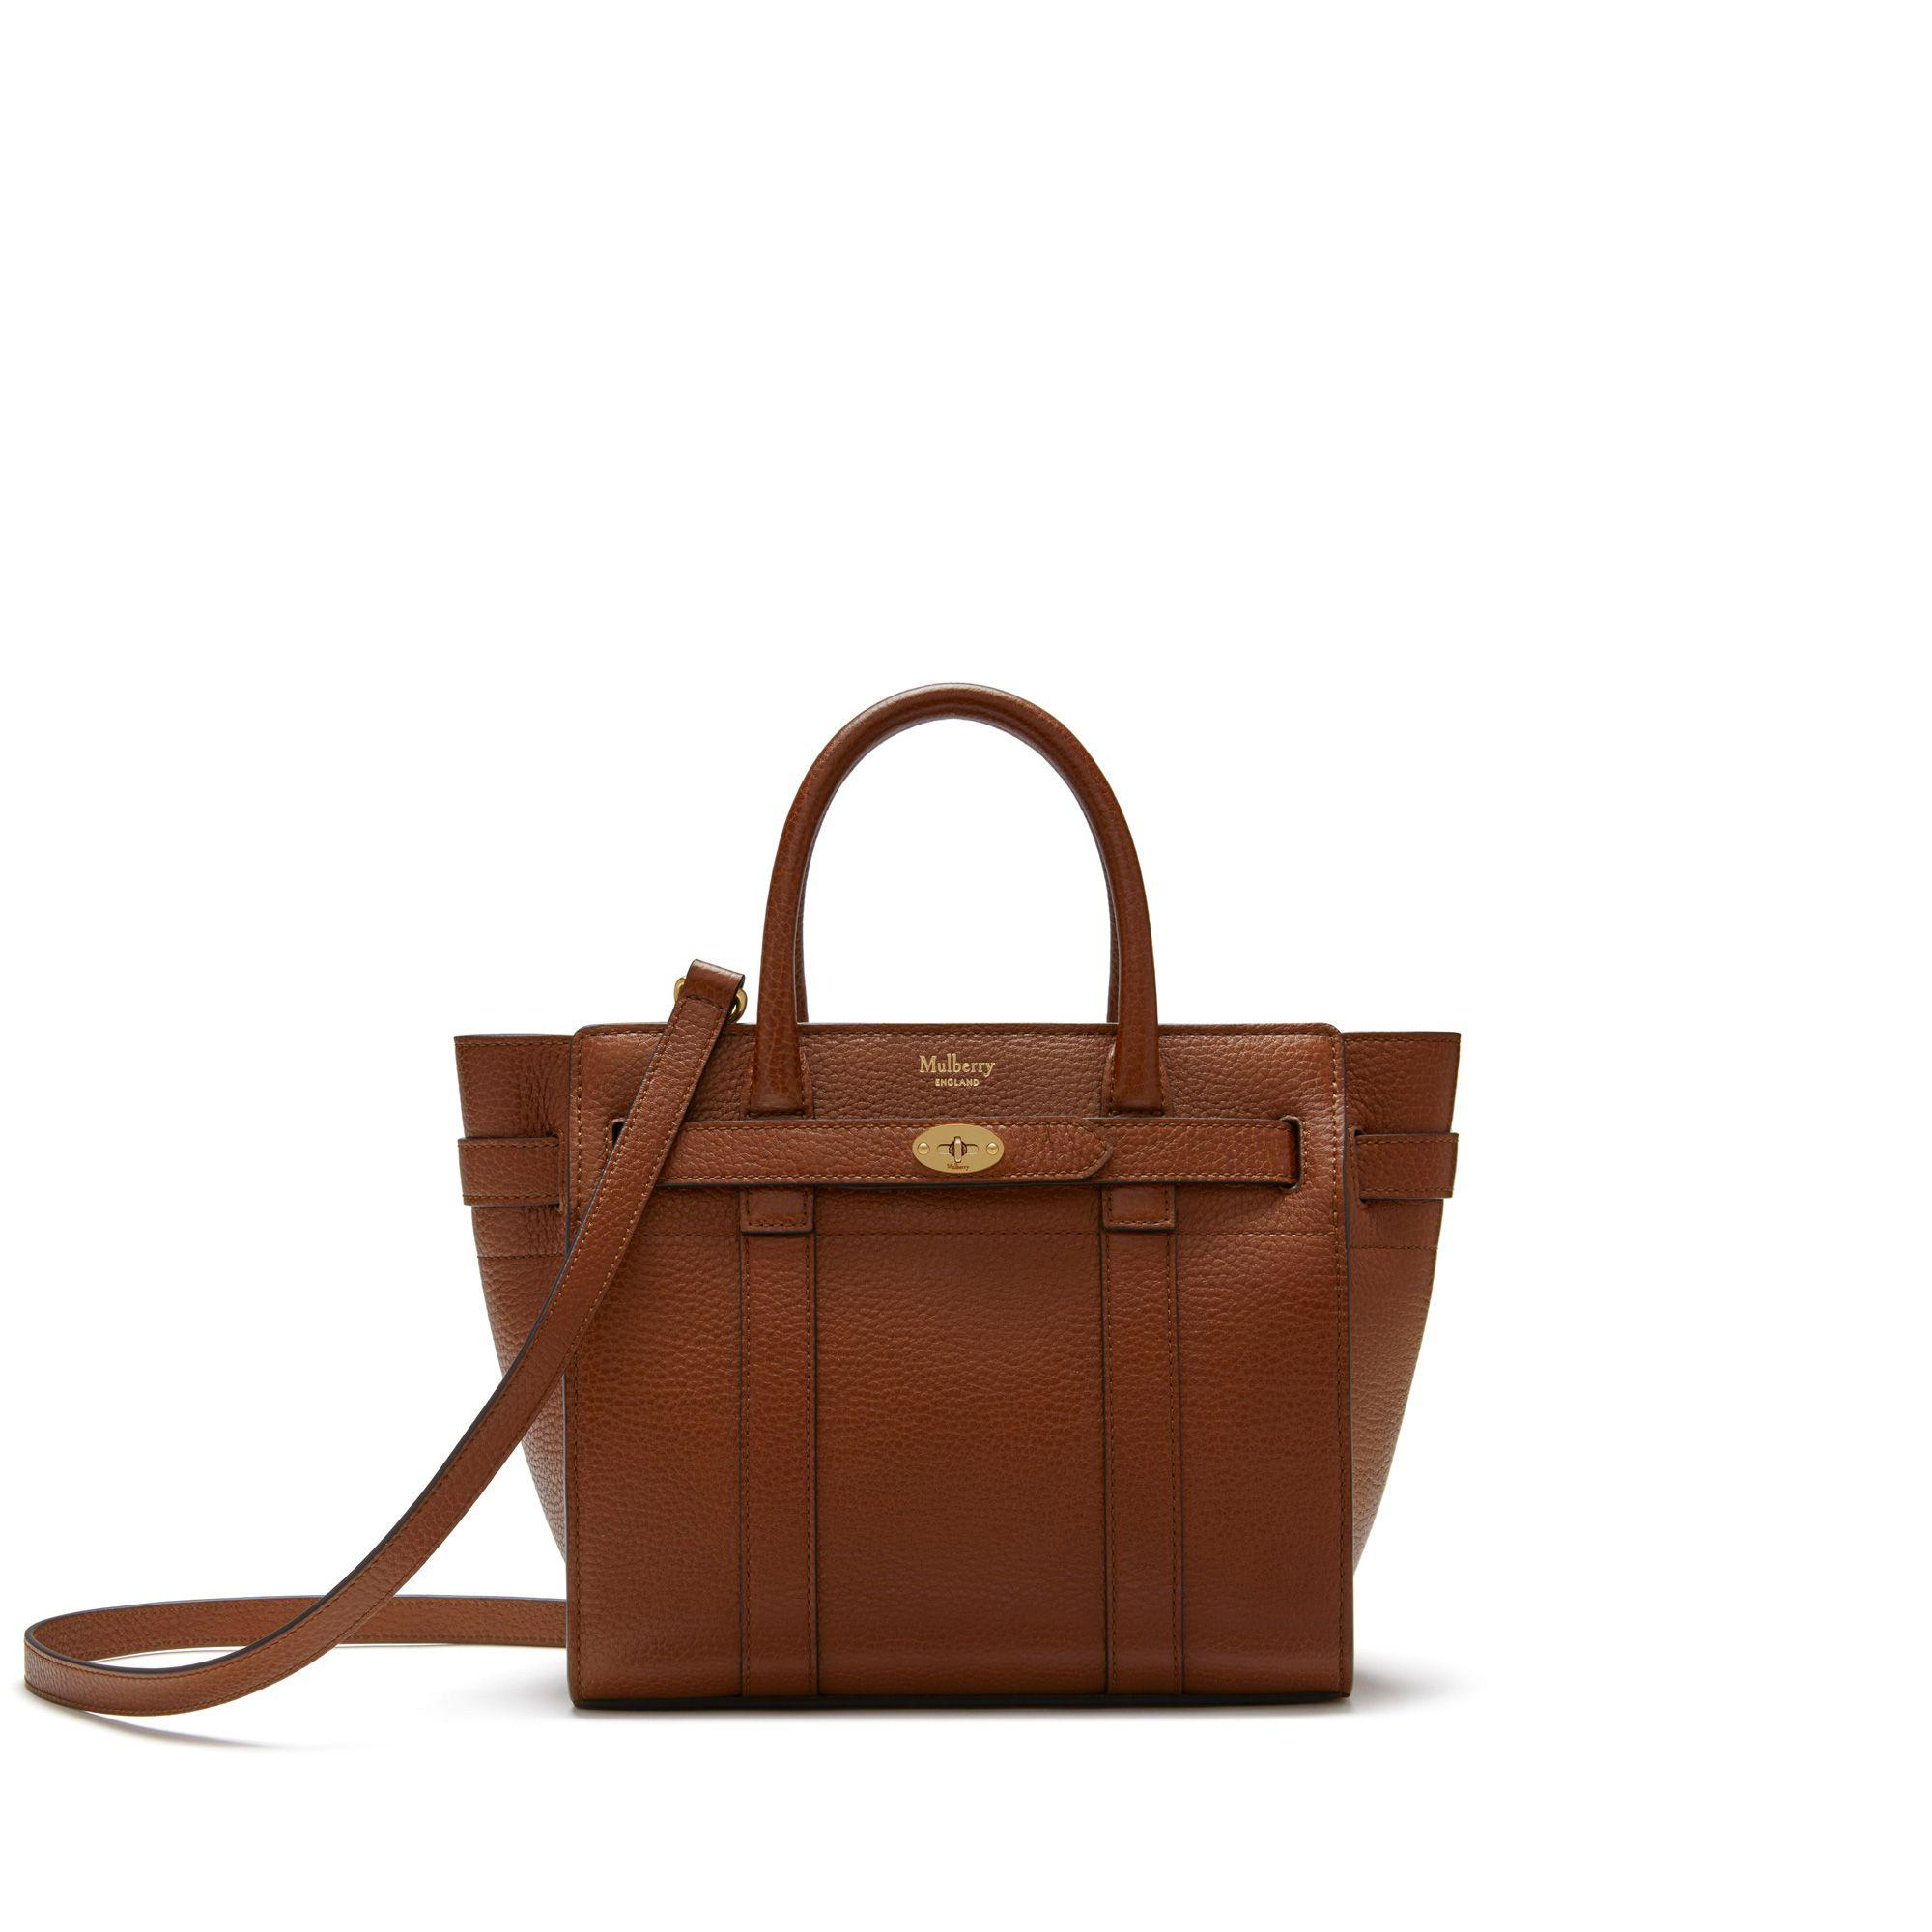 a4d2f633d3 Mulberry Mini Zipped Bayswater In Oak Natural Grain Leather in Brown ...